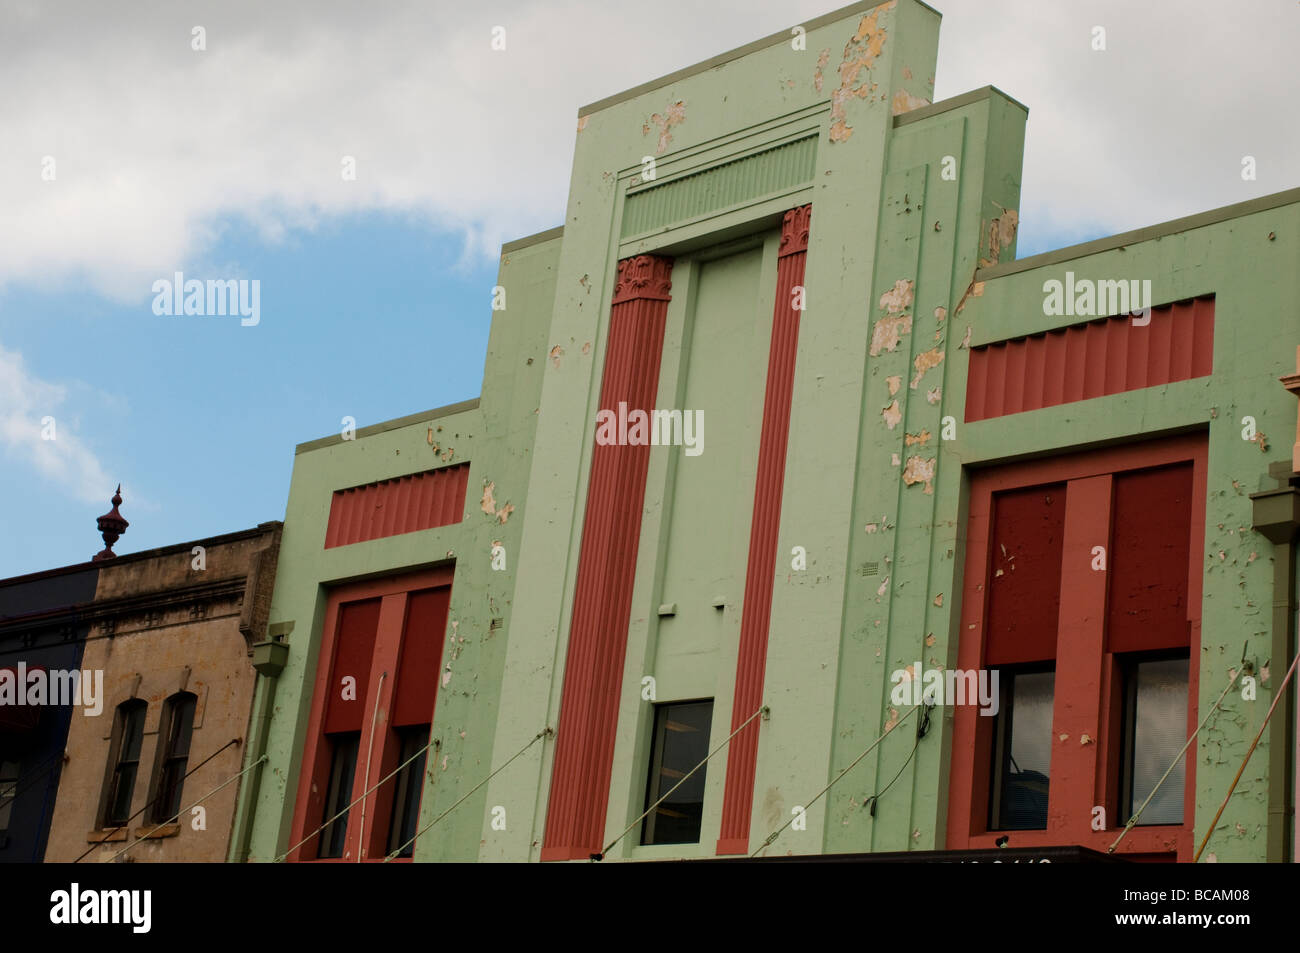 Run down Art Deco facade on King Street, Newtown, Sydney, NSW, Australia